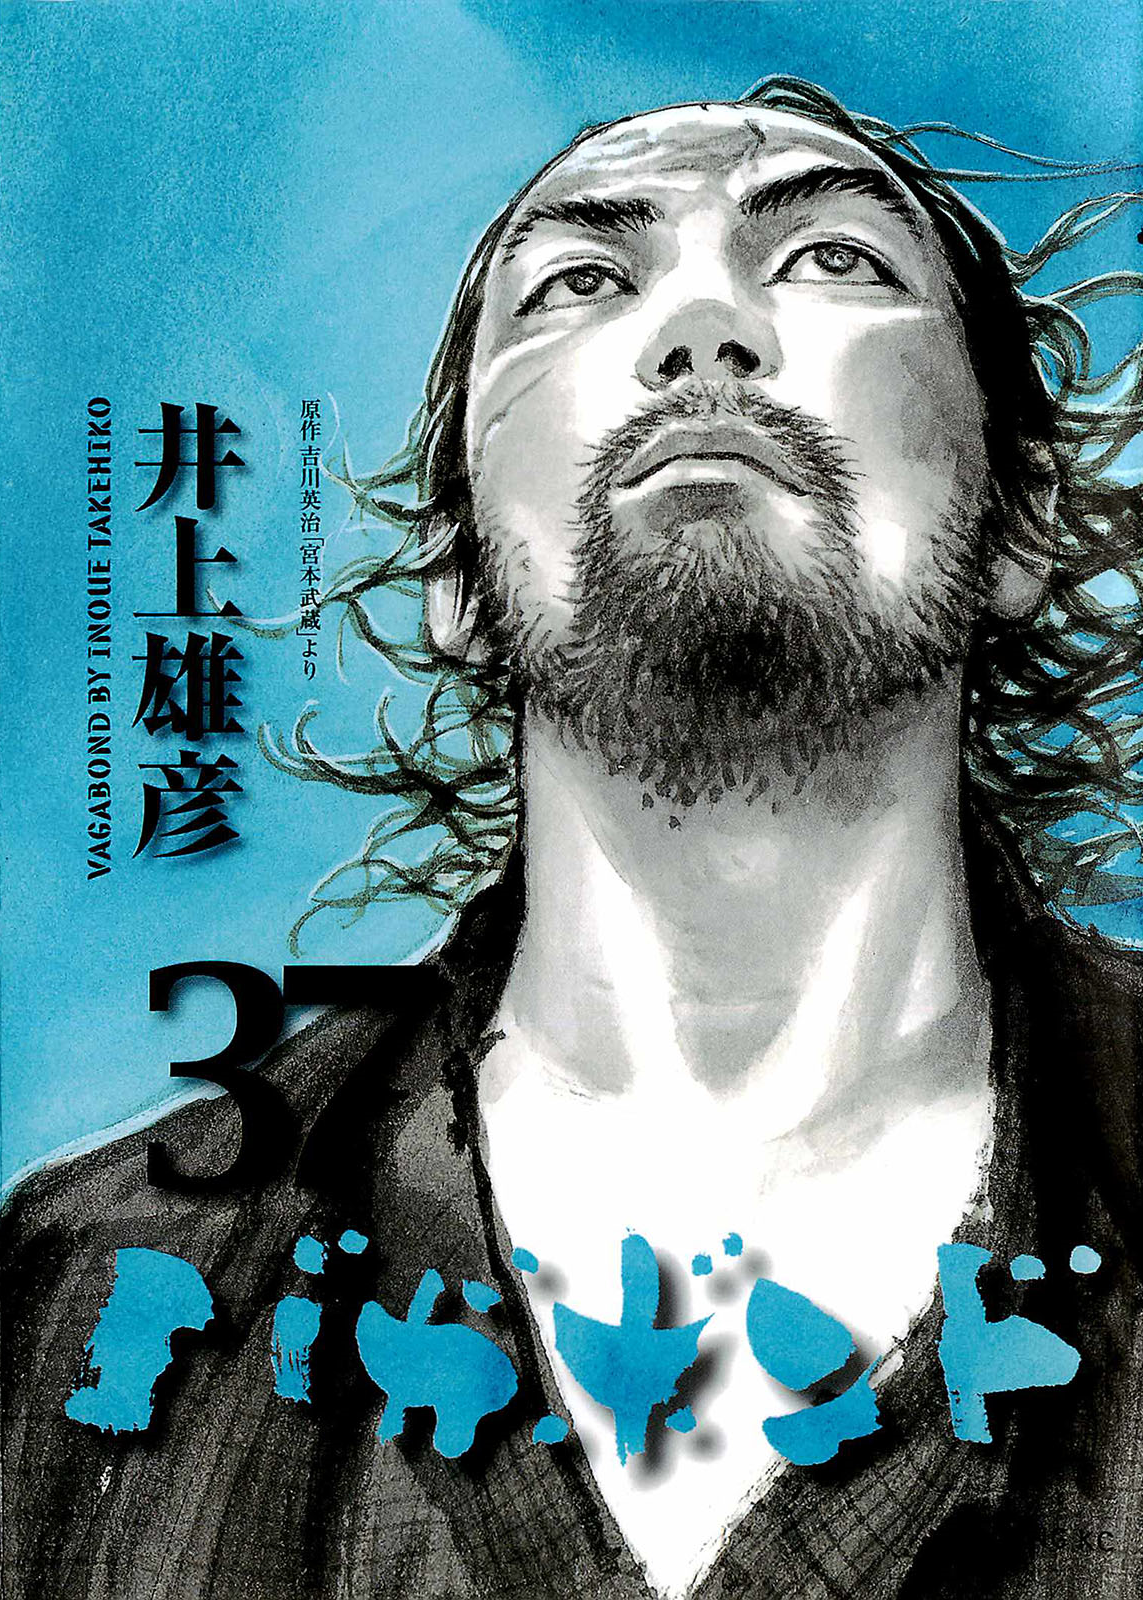 List of Vagabond chapters and volumes - Vagabond Wiki